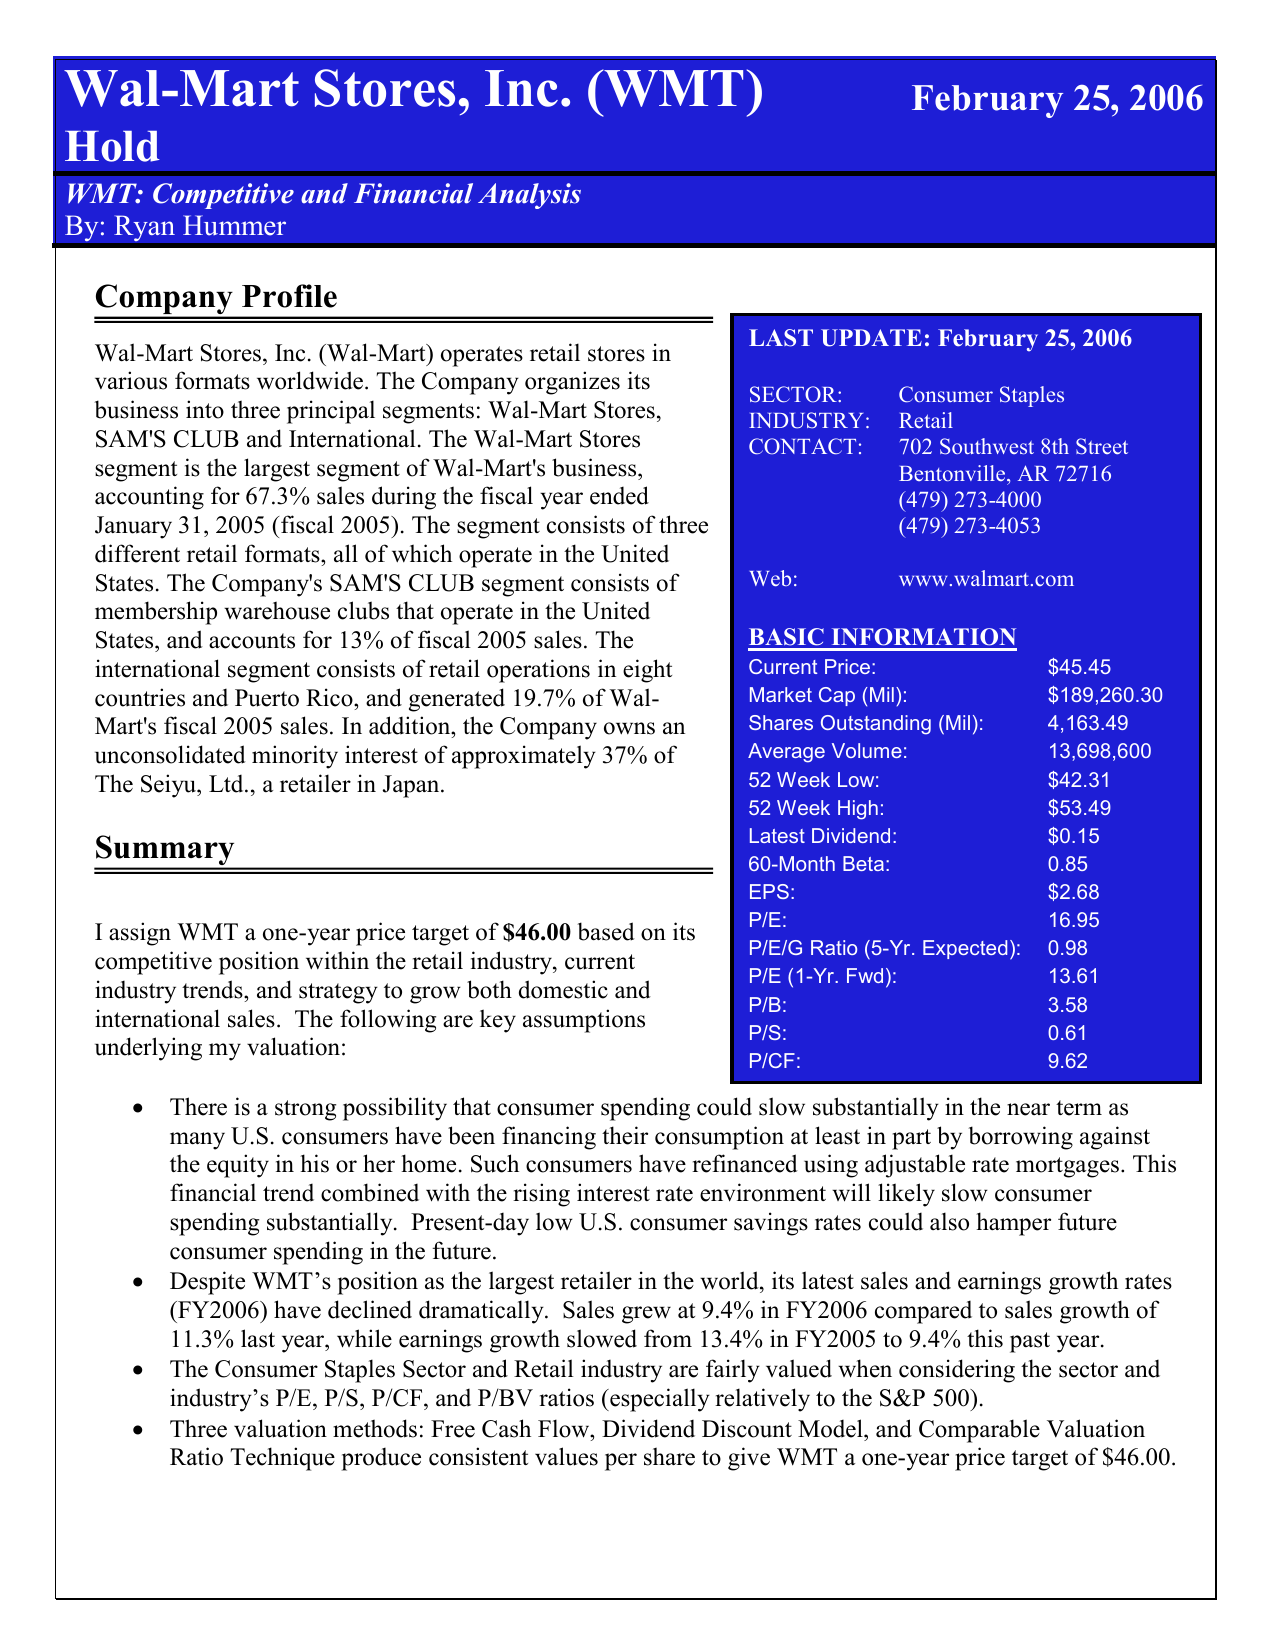 Wal-Mart Stores, Inc - Fisher College of Business